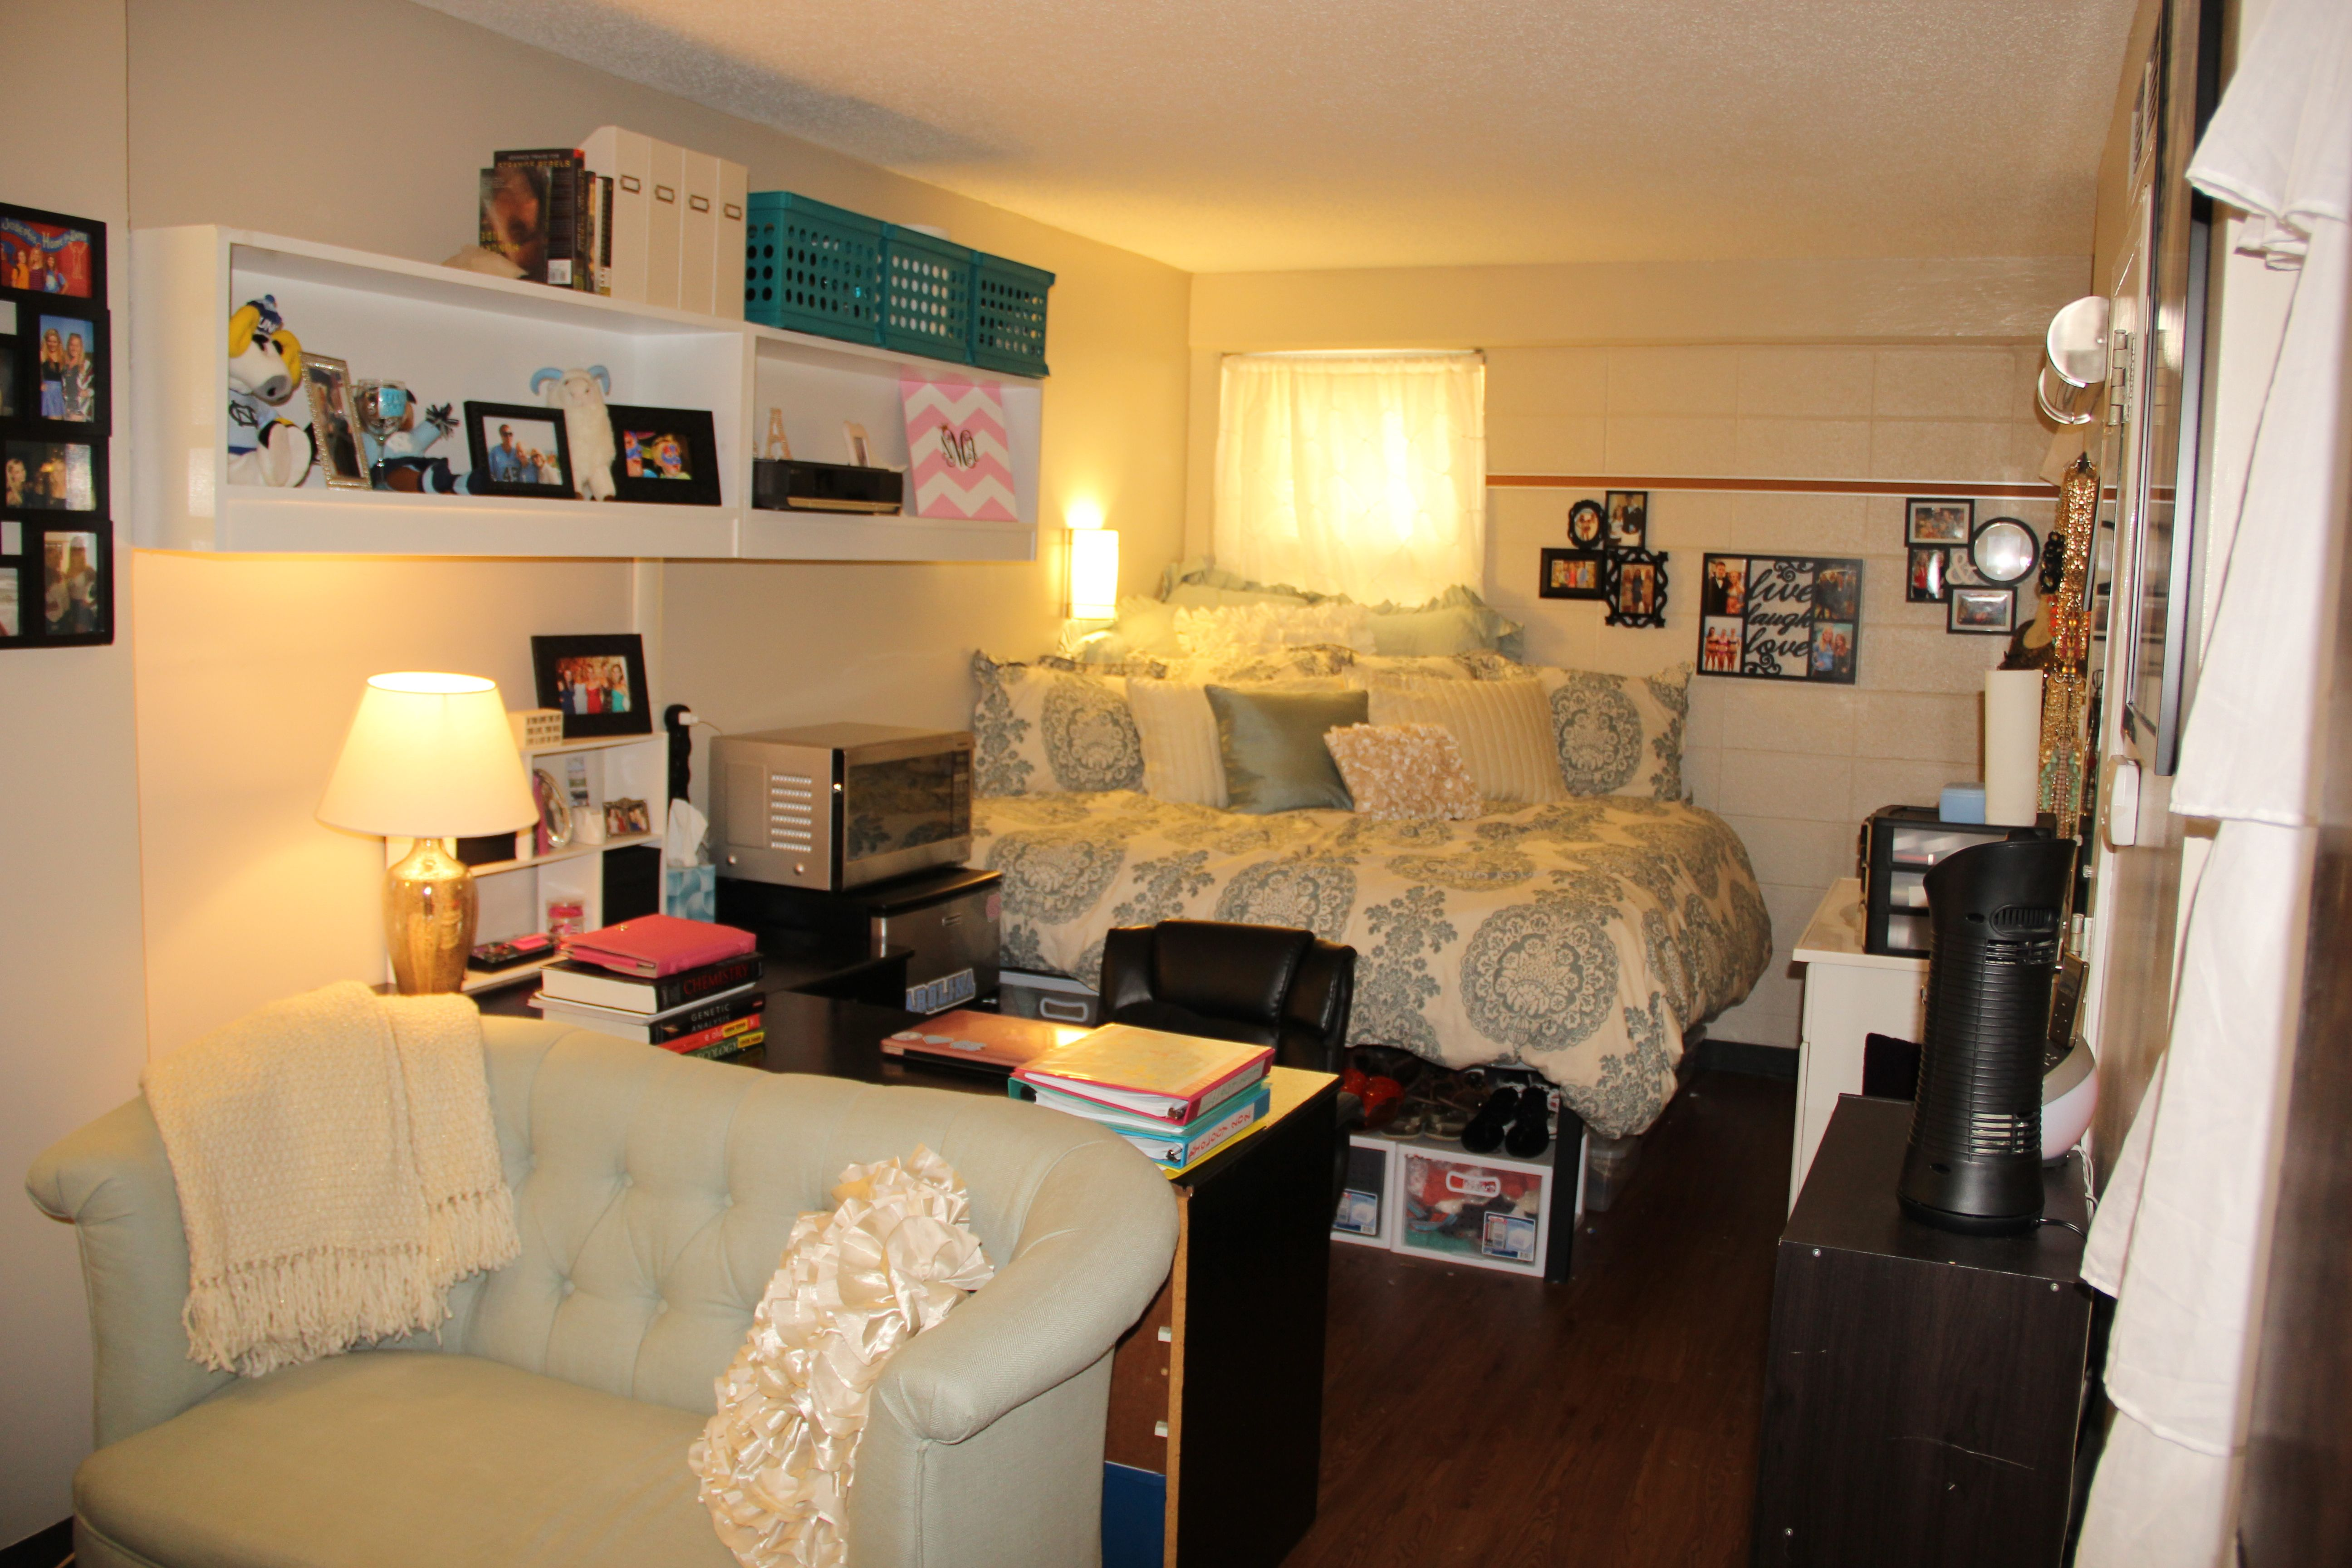 Traditional Single Room Decorated By A Resident Home Suites Room Decor Room Makeover Inspiration